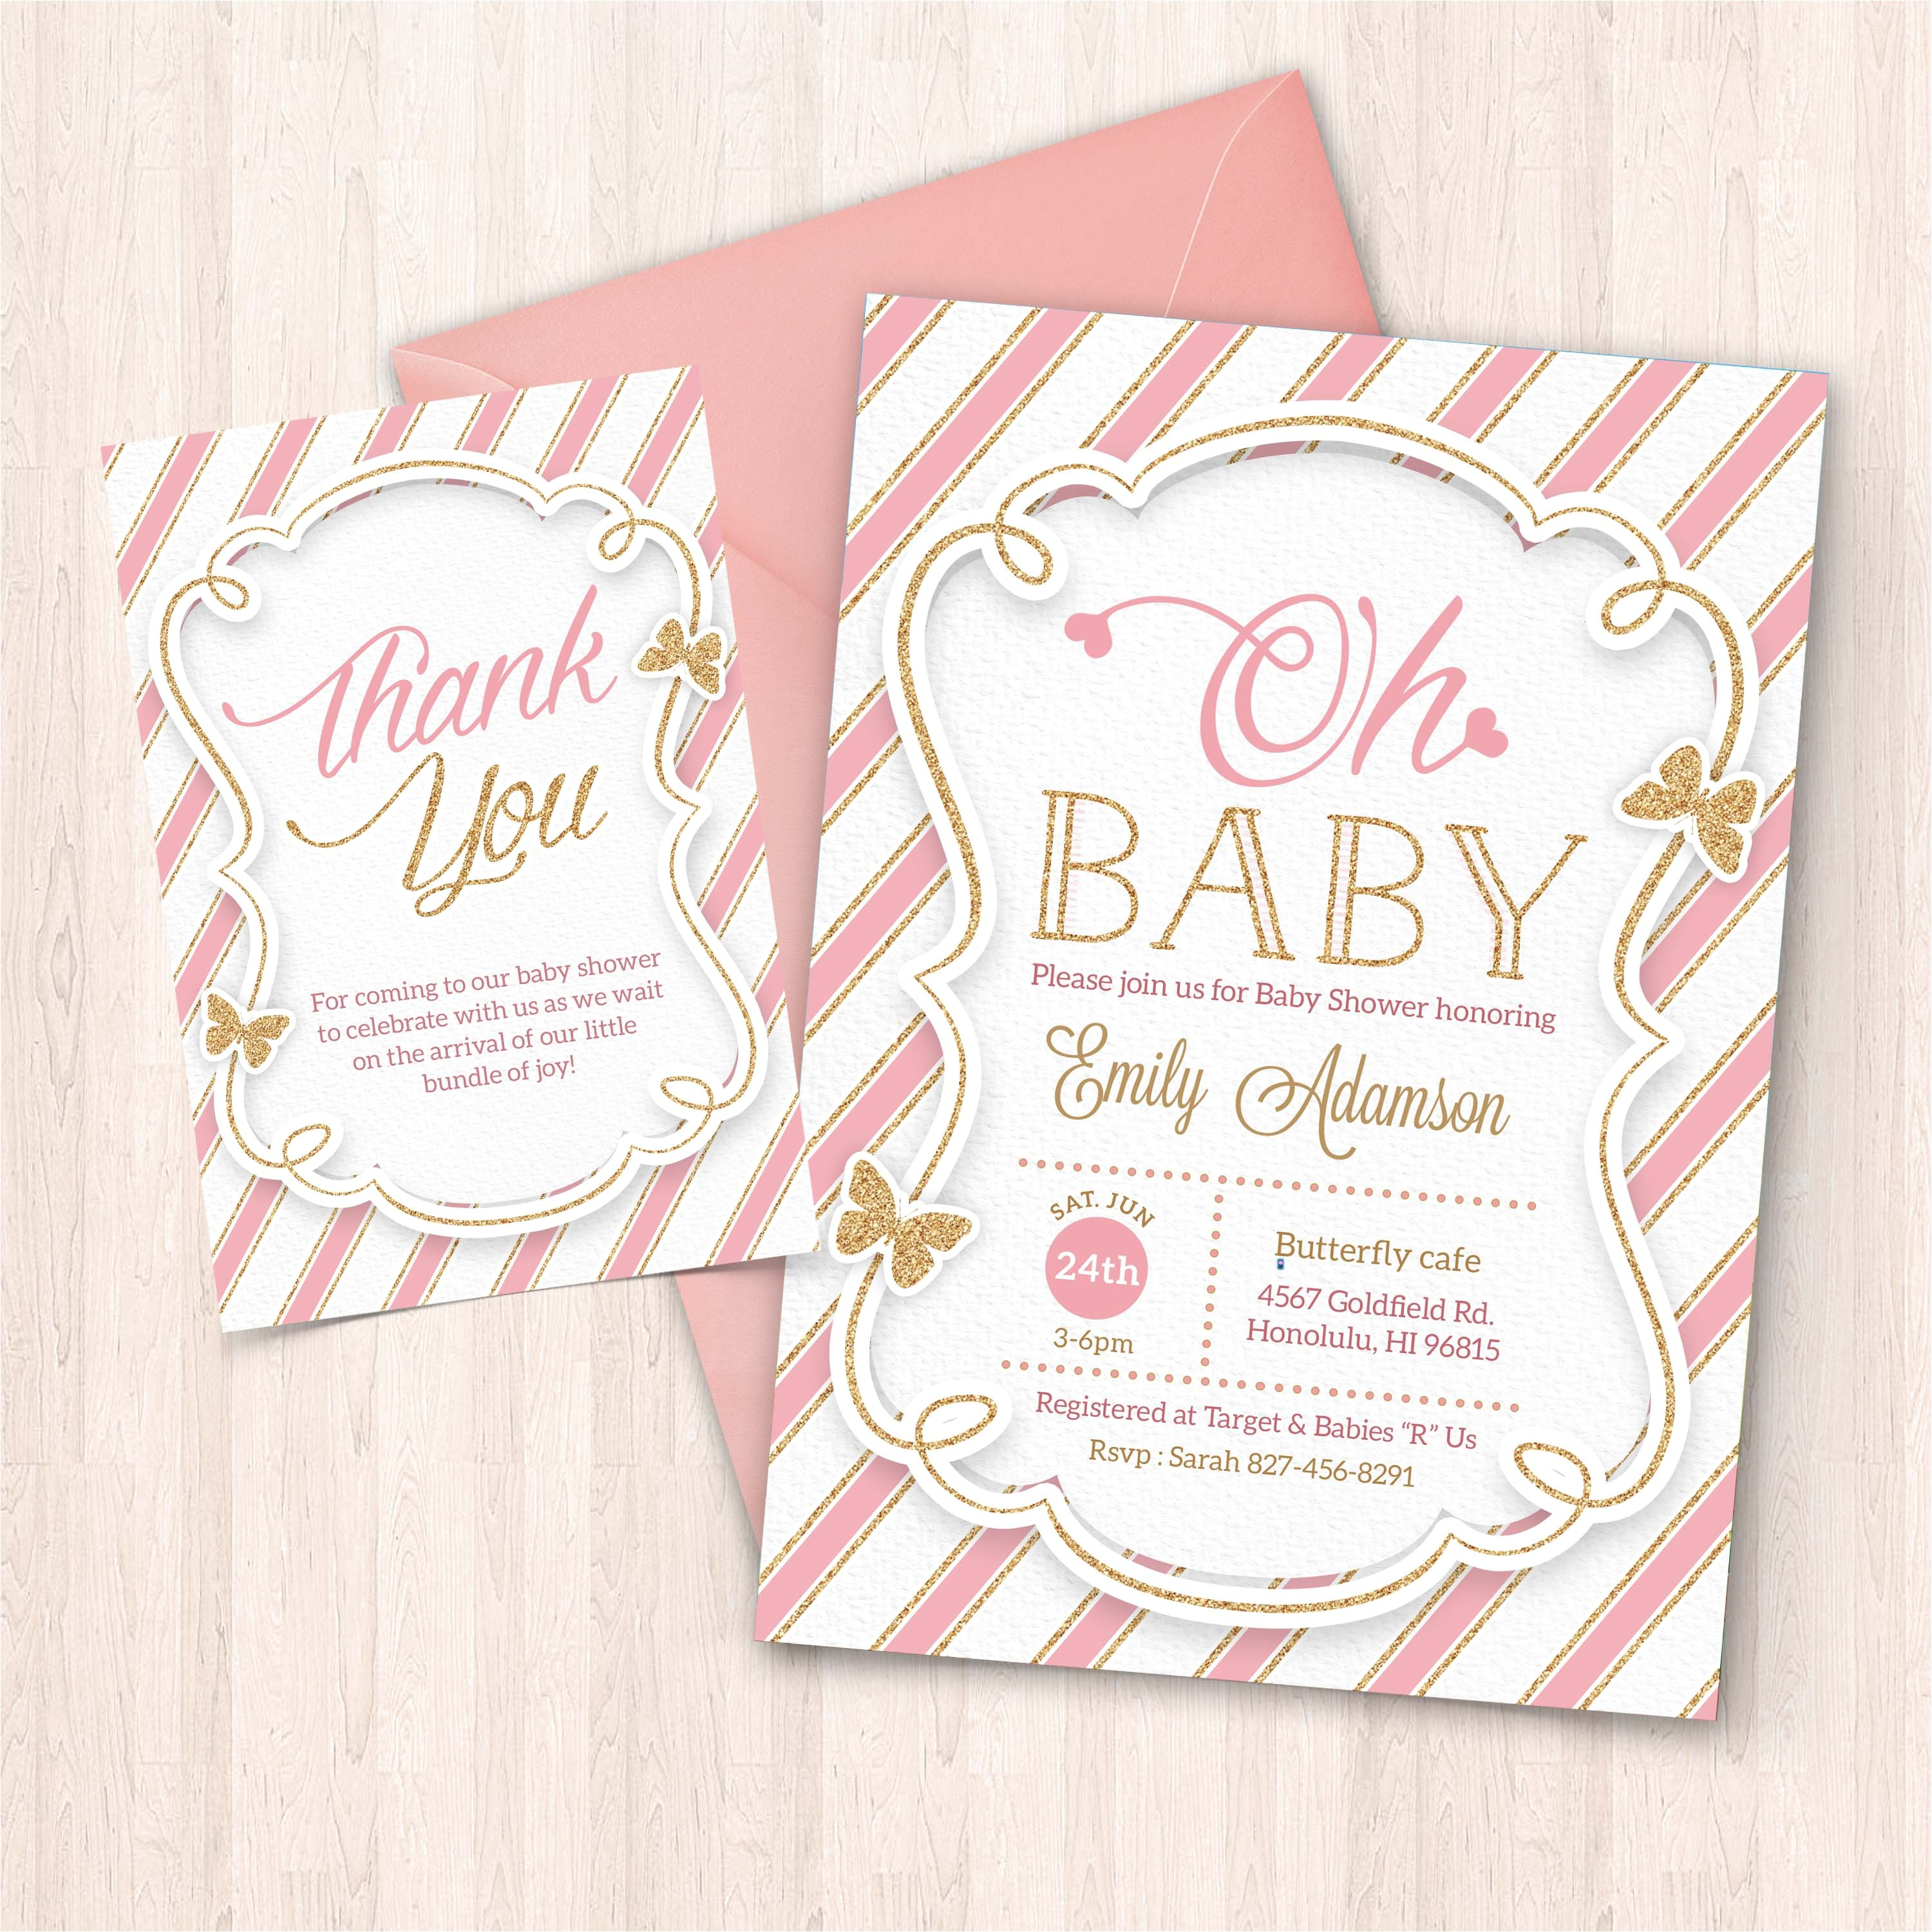 printable pink and gold baby shower invitation free thank you card to print at home